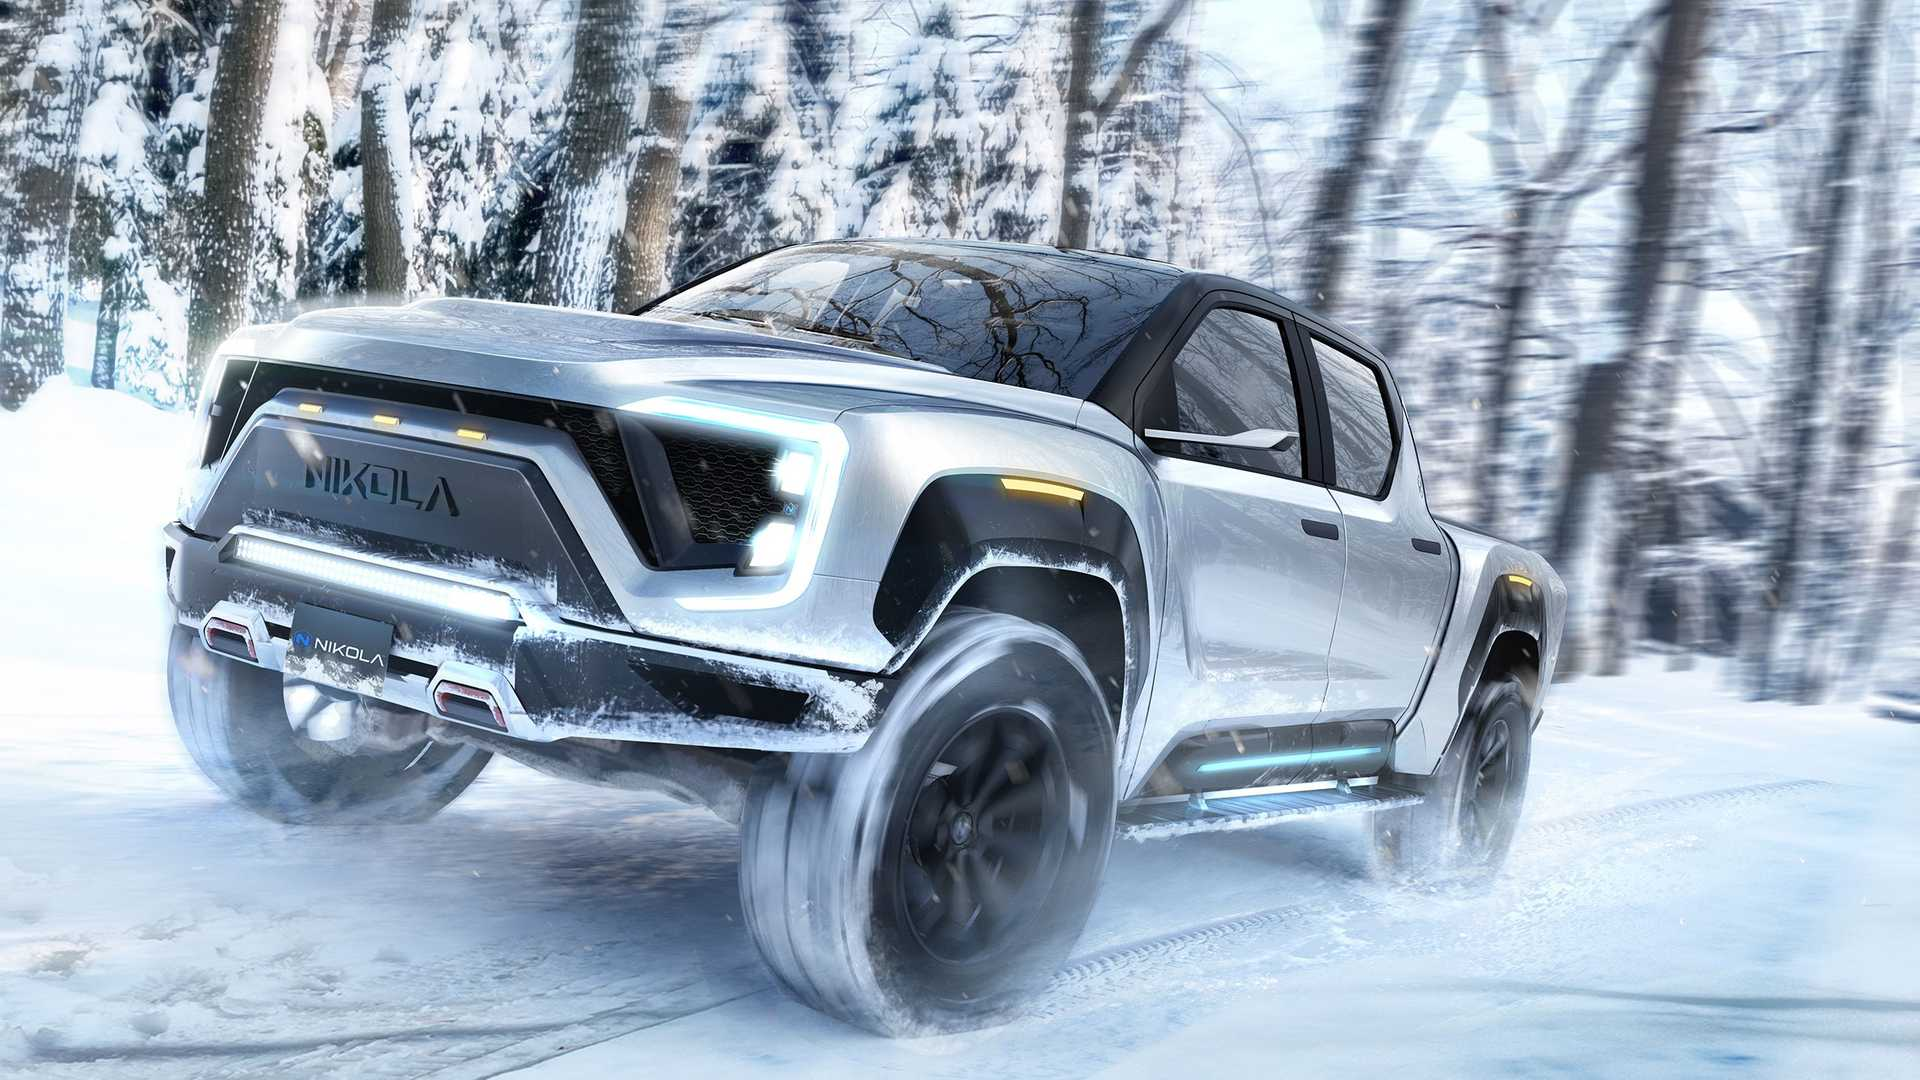 nikola-badger-electric-pickup-truck-3